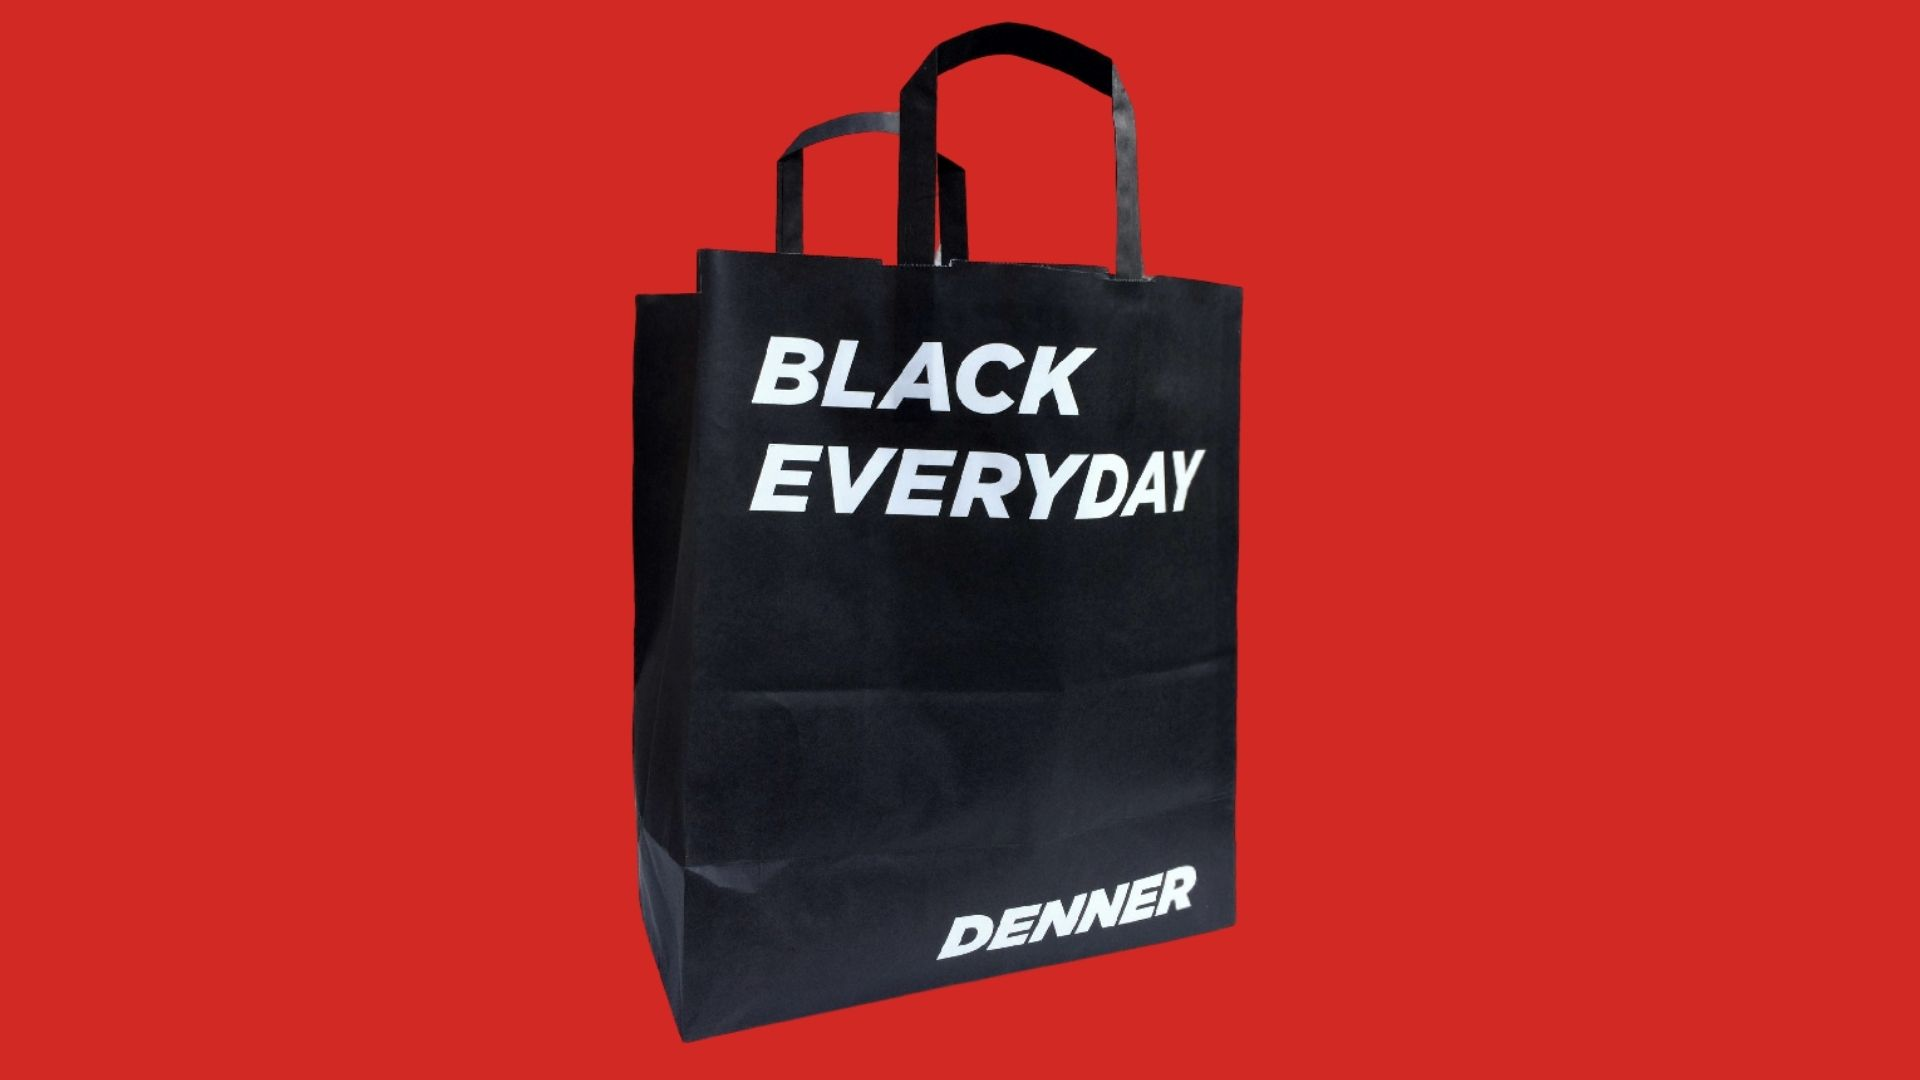 Black Everyday by Denner